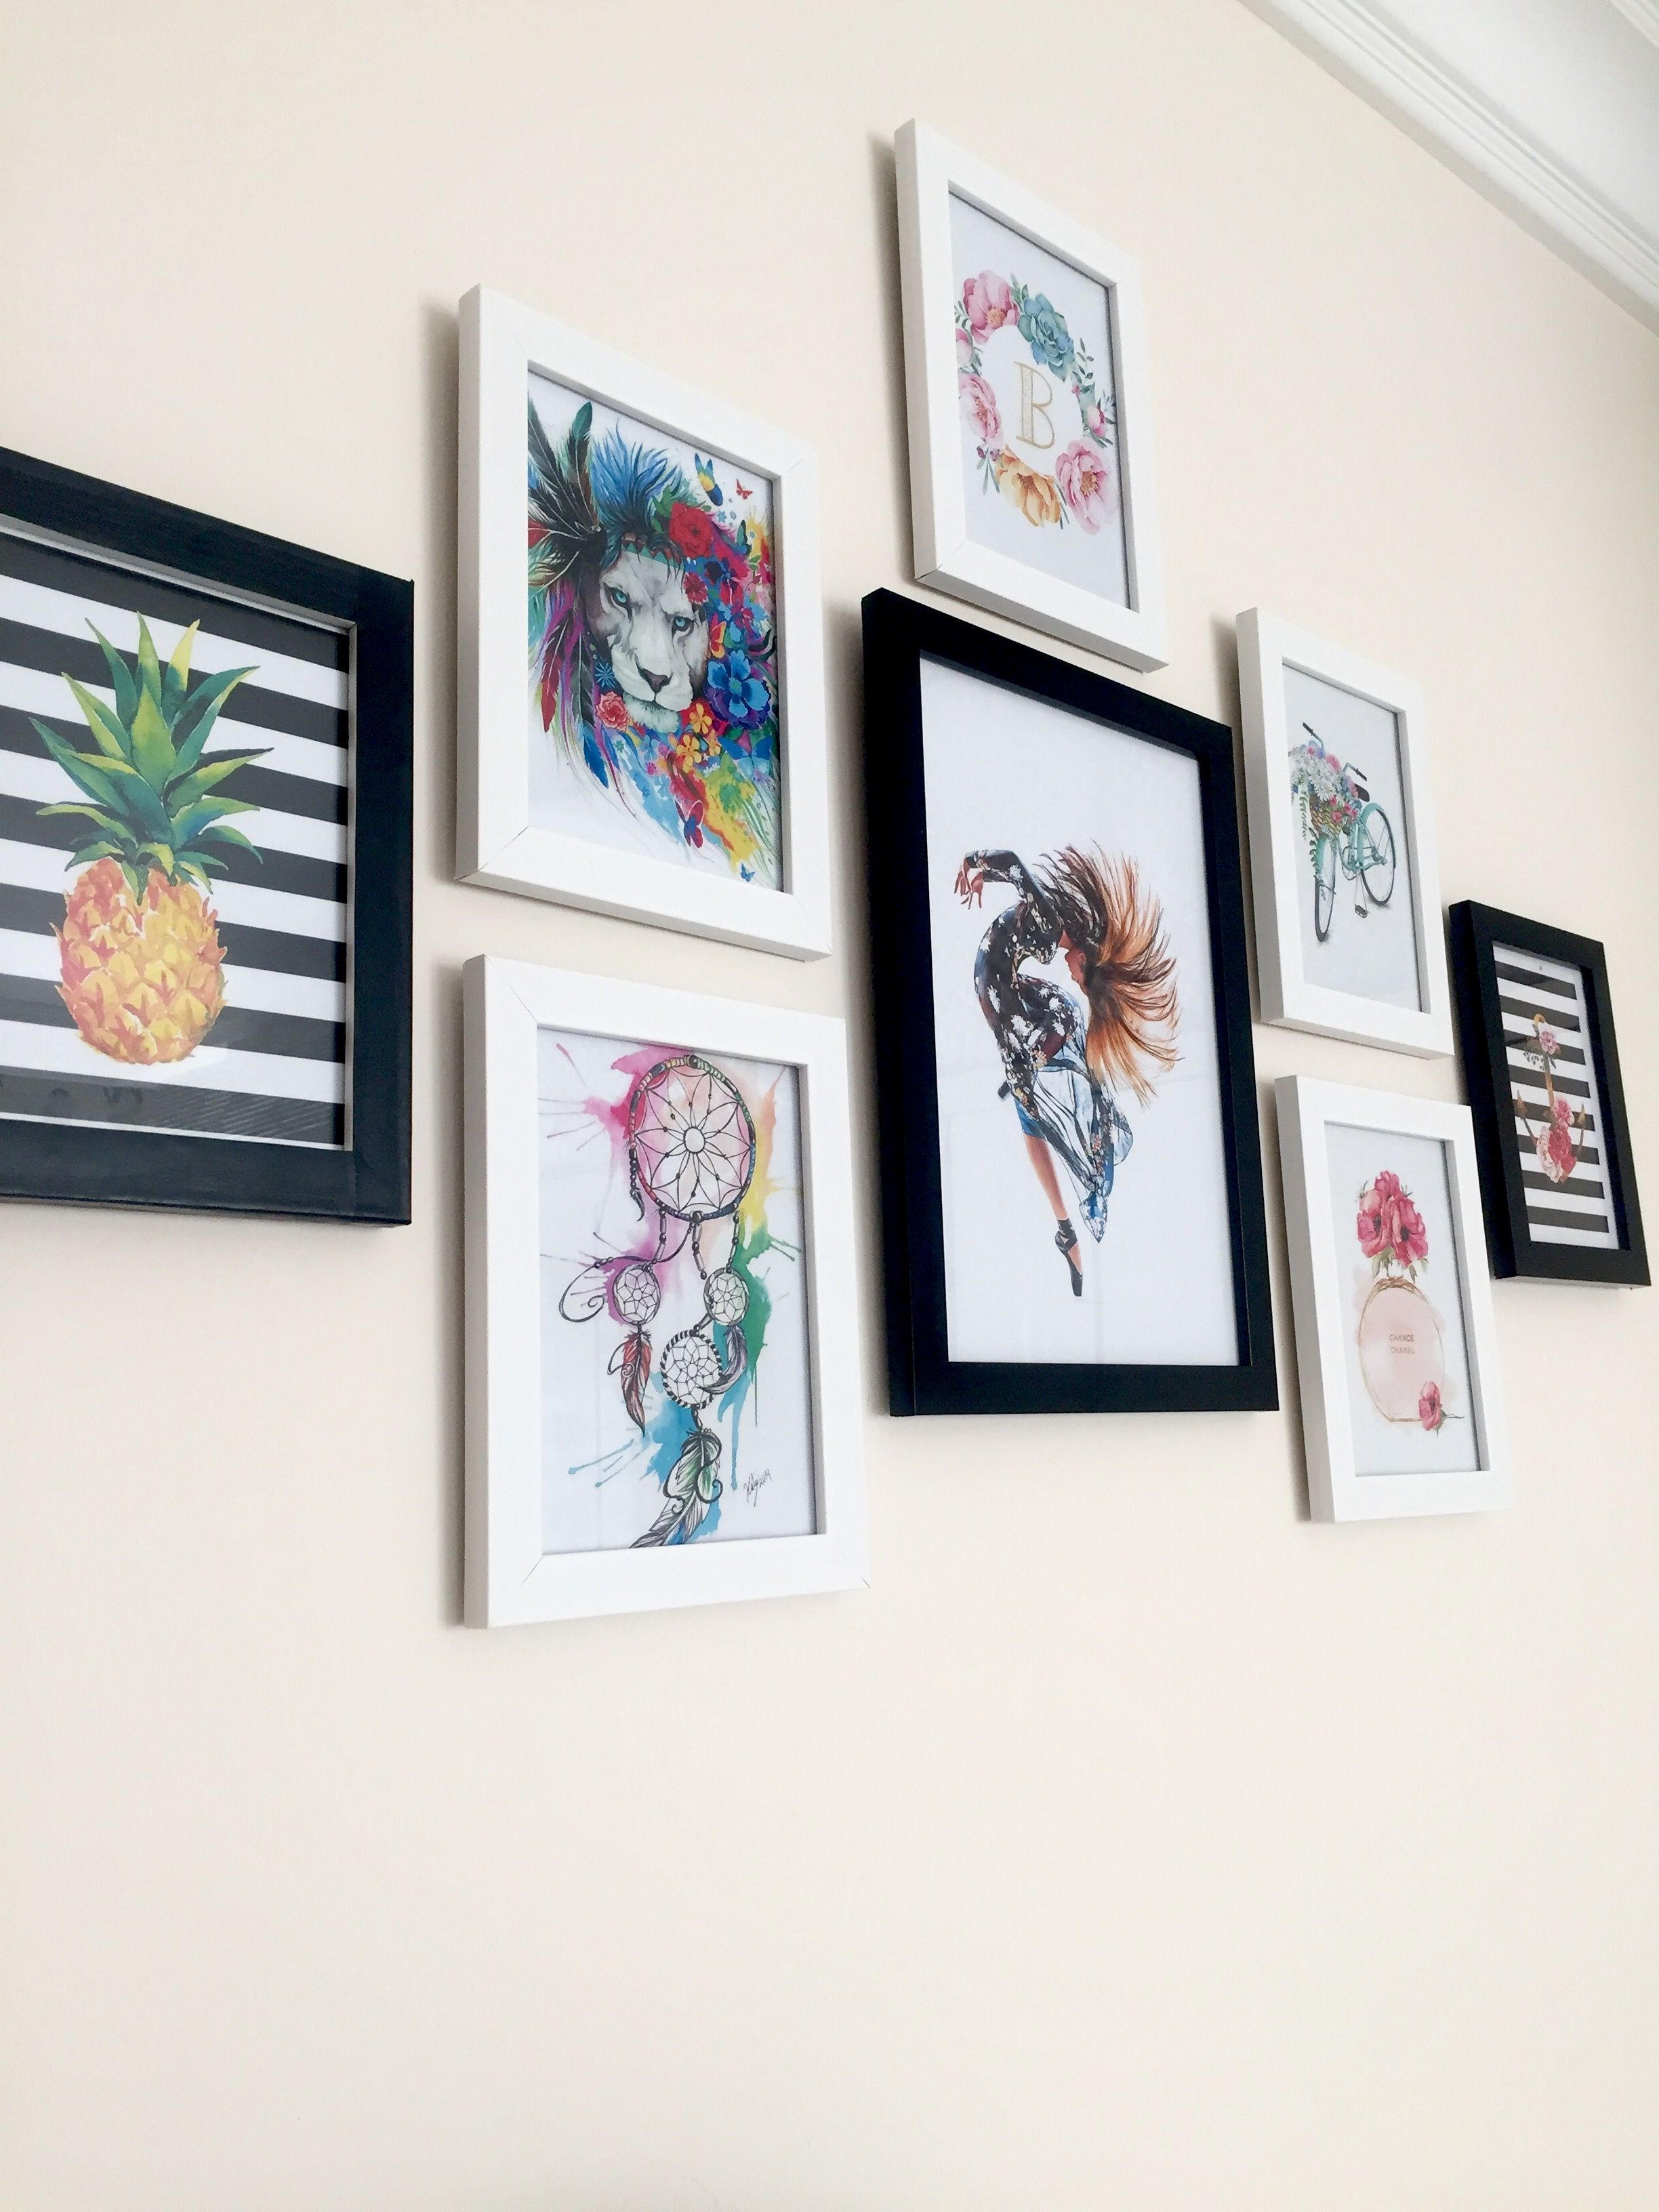 Gallery Wall Decor Idea #Gallerywall #Walldecor #Wall #Frames #Pineapple #Dreamcatcher